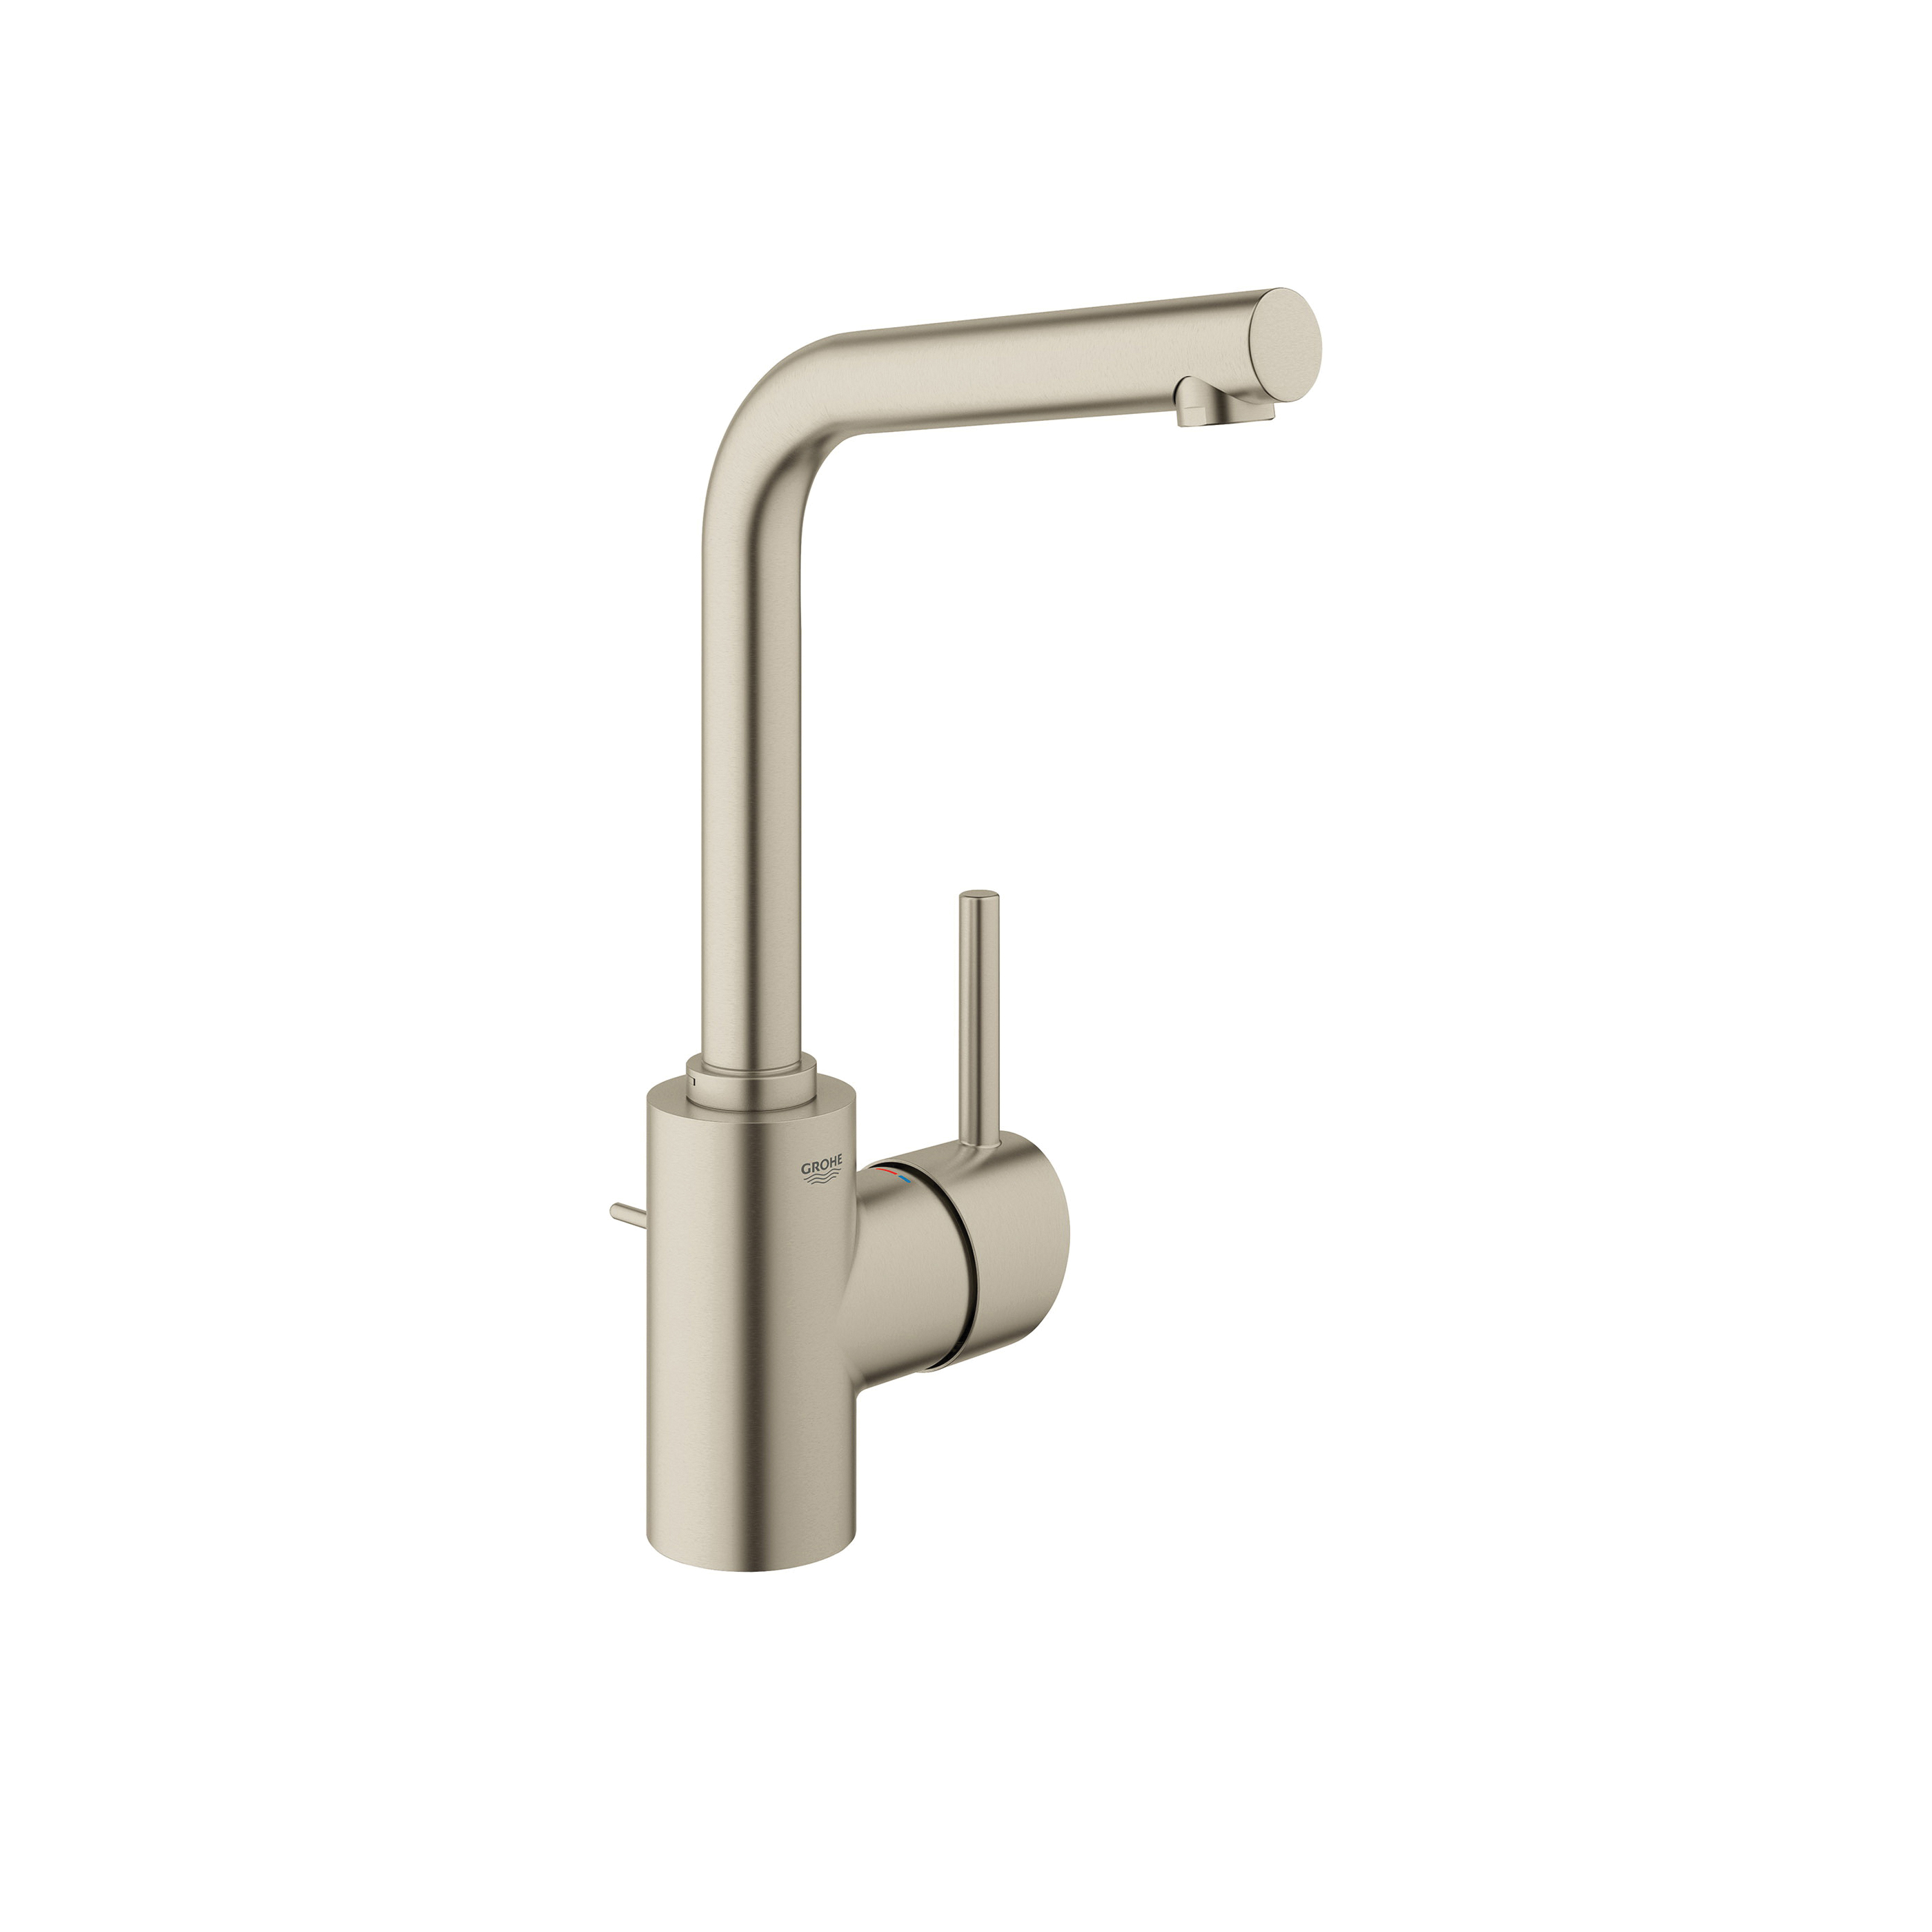 GROHE 23737EN1 Concetto Bathroom Faucet, 2.2 gpm, 10-3/8 in H Spout, 1 Handle, Pop-Up Drain, 1 Faucet Hole, Brushed Nickel, Import